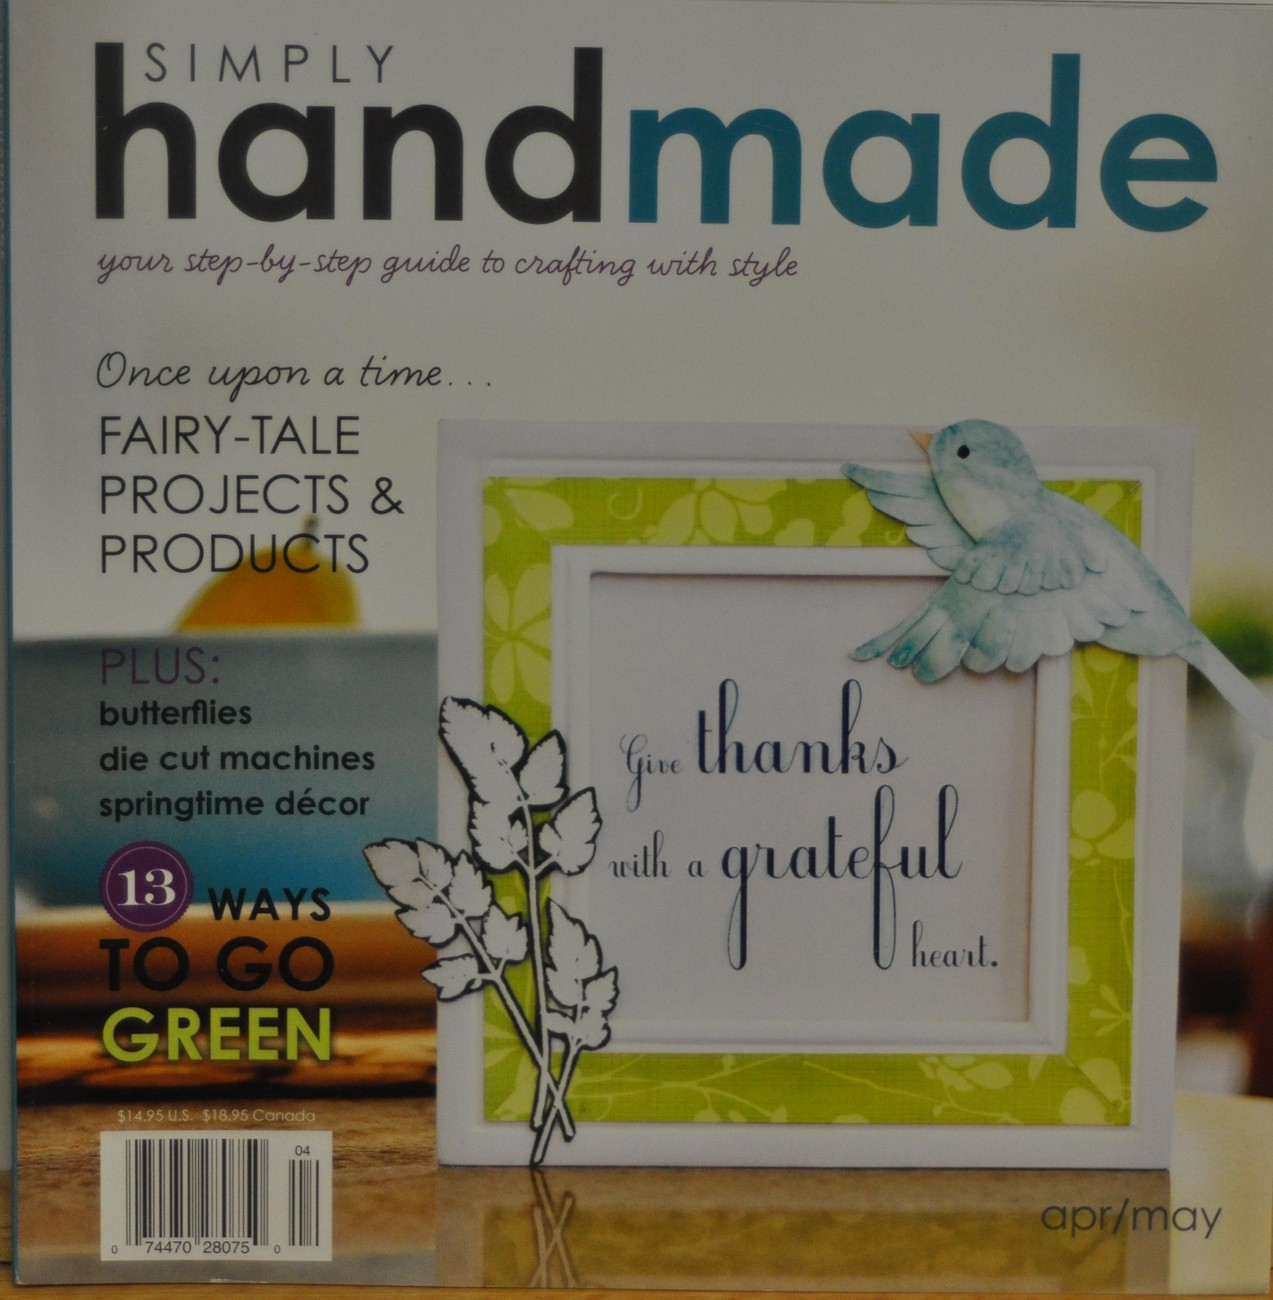 Simply Handmade Apr/May 2009